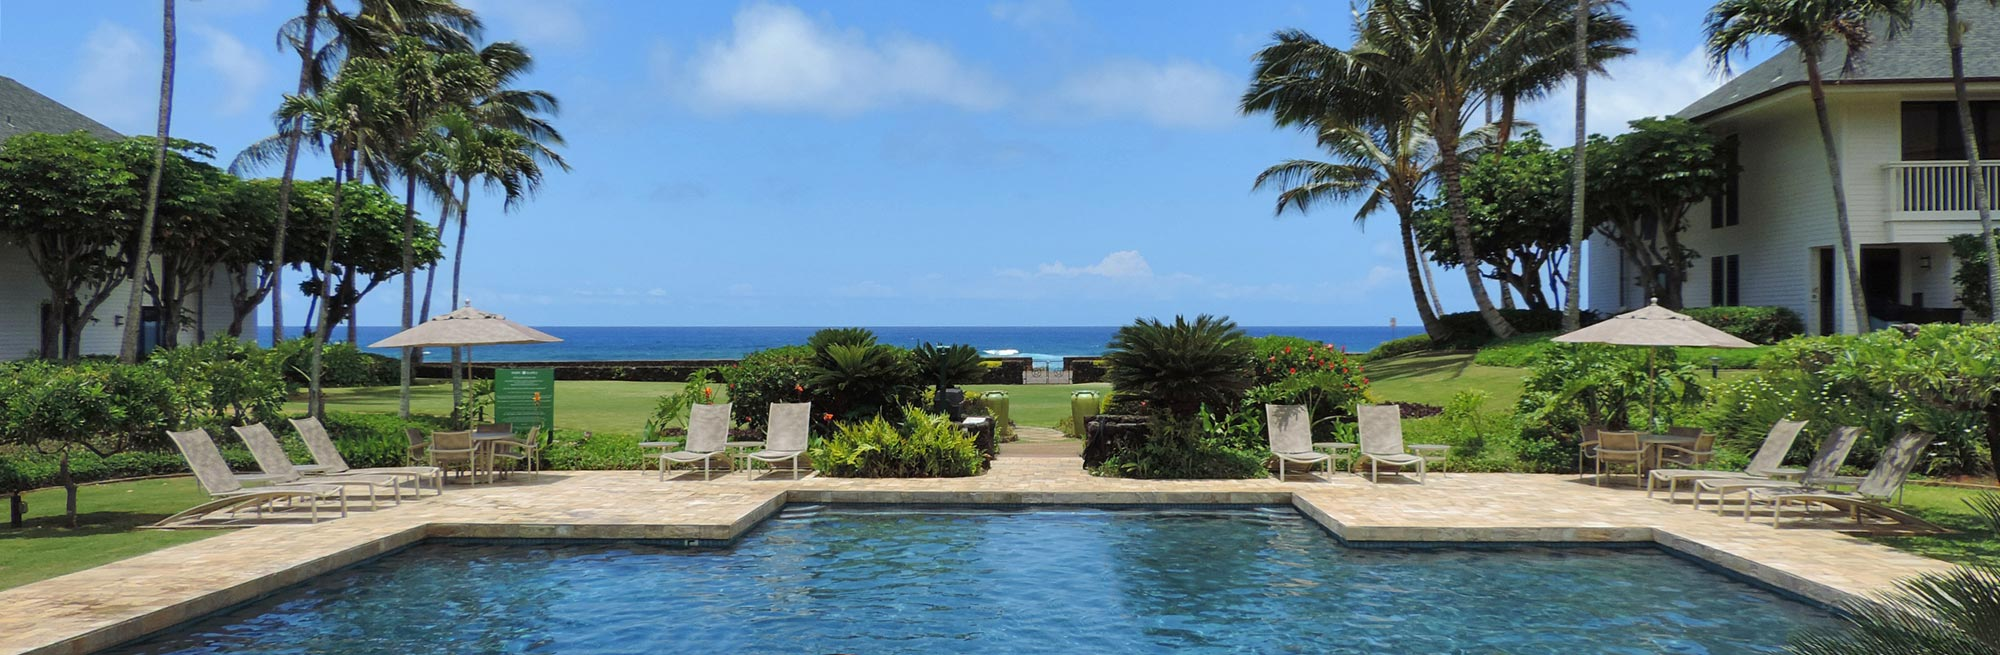 Poipu Kapili 22 pool ocean view